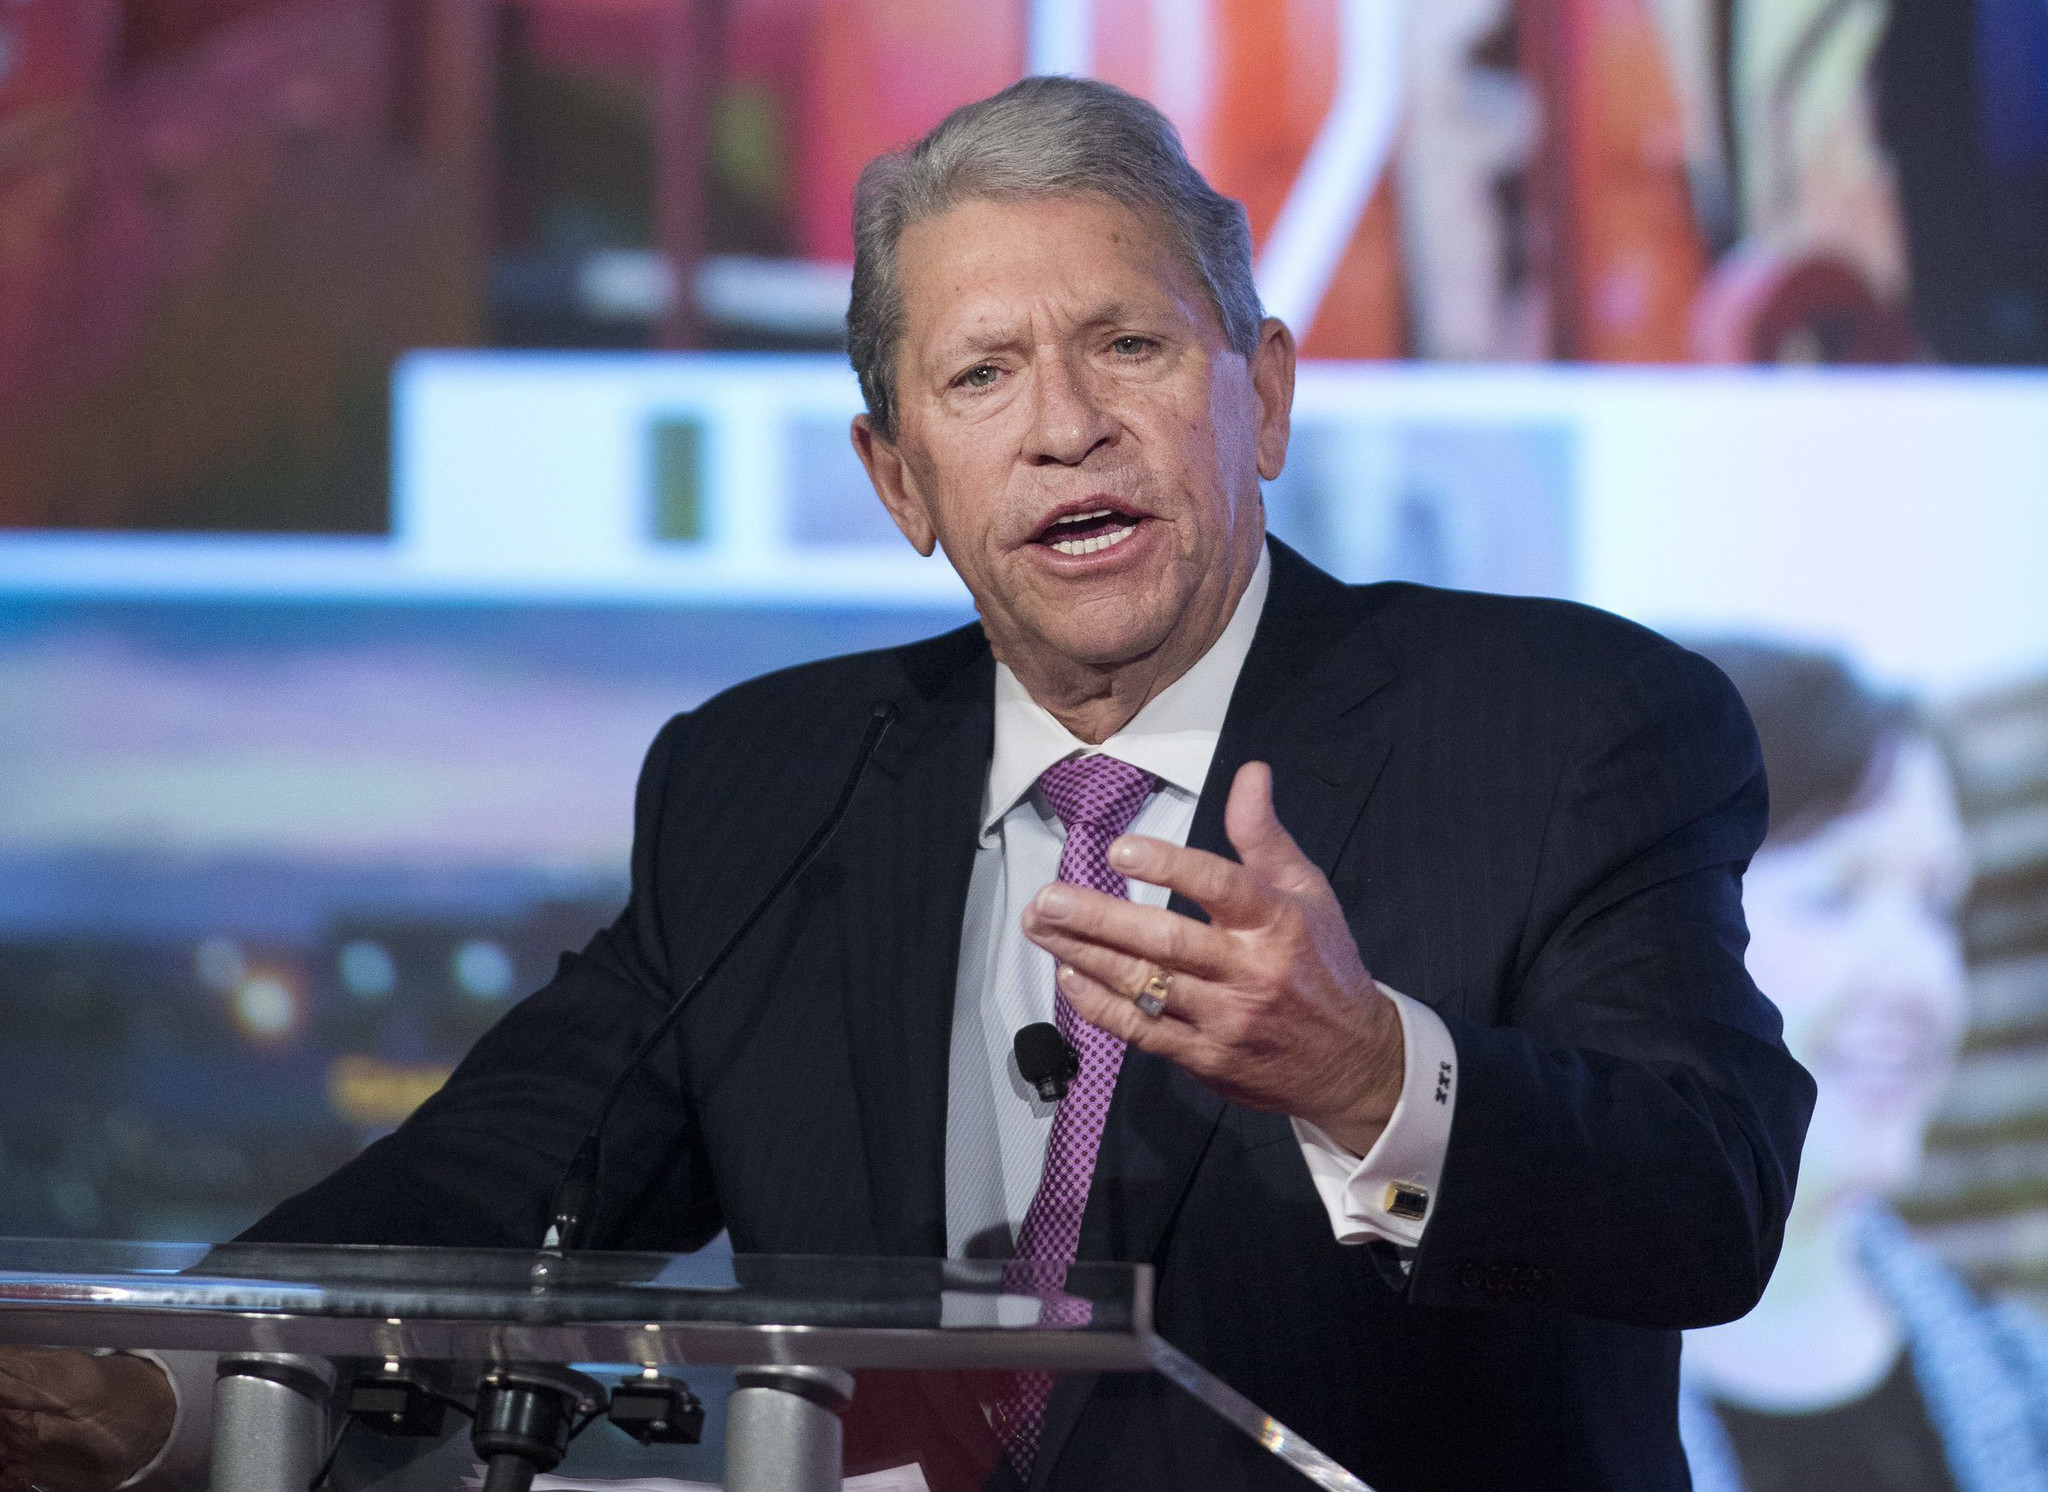 Hunter Harrison, CEO of railroad company CSX, dead at 73